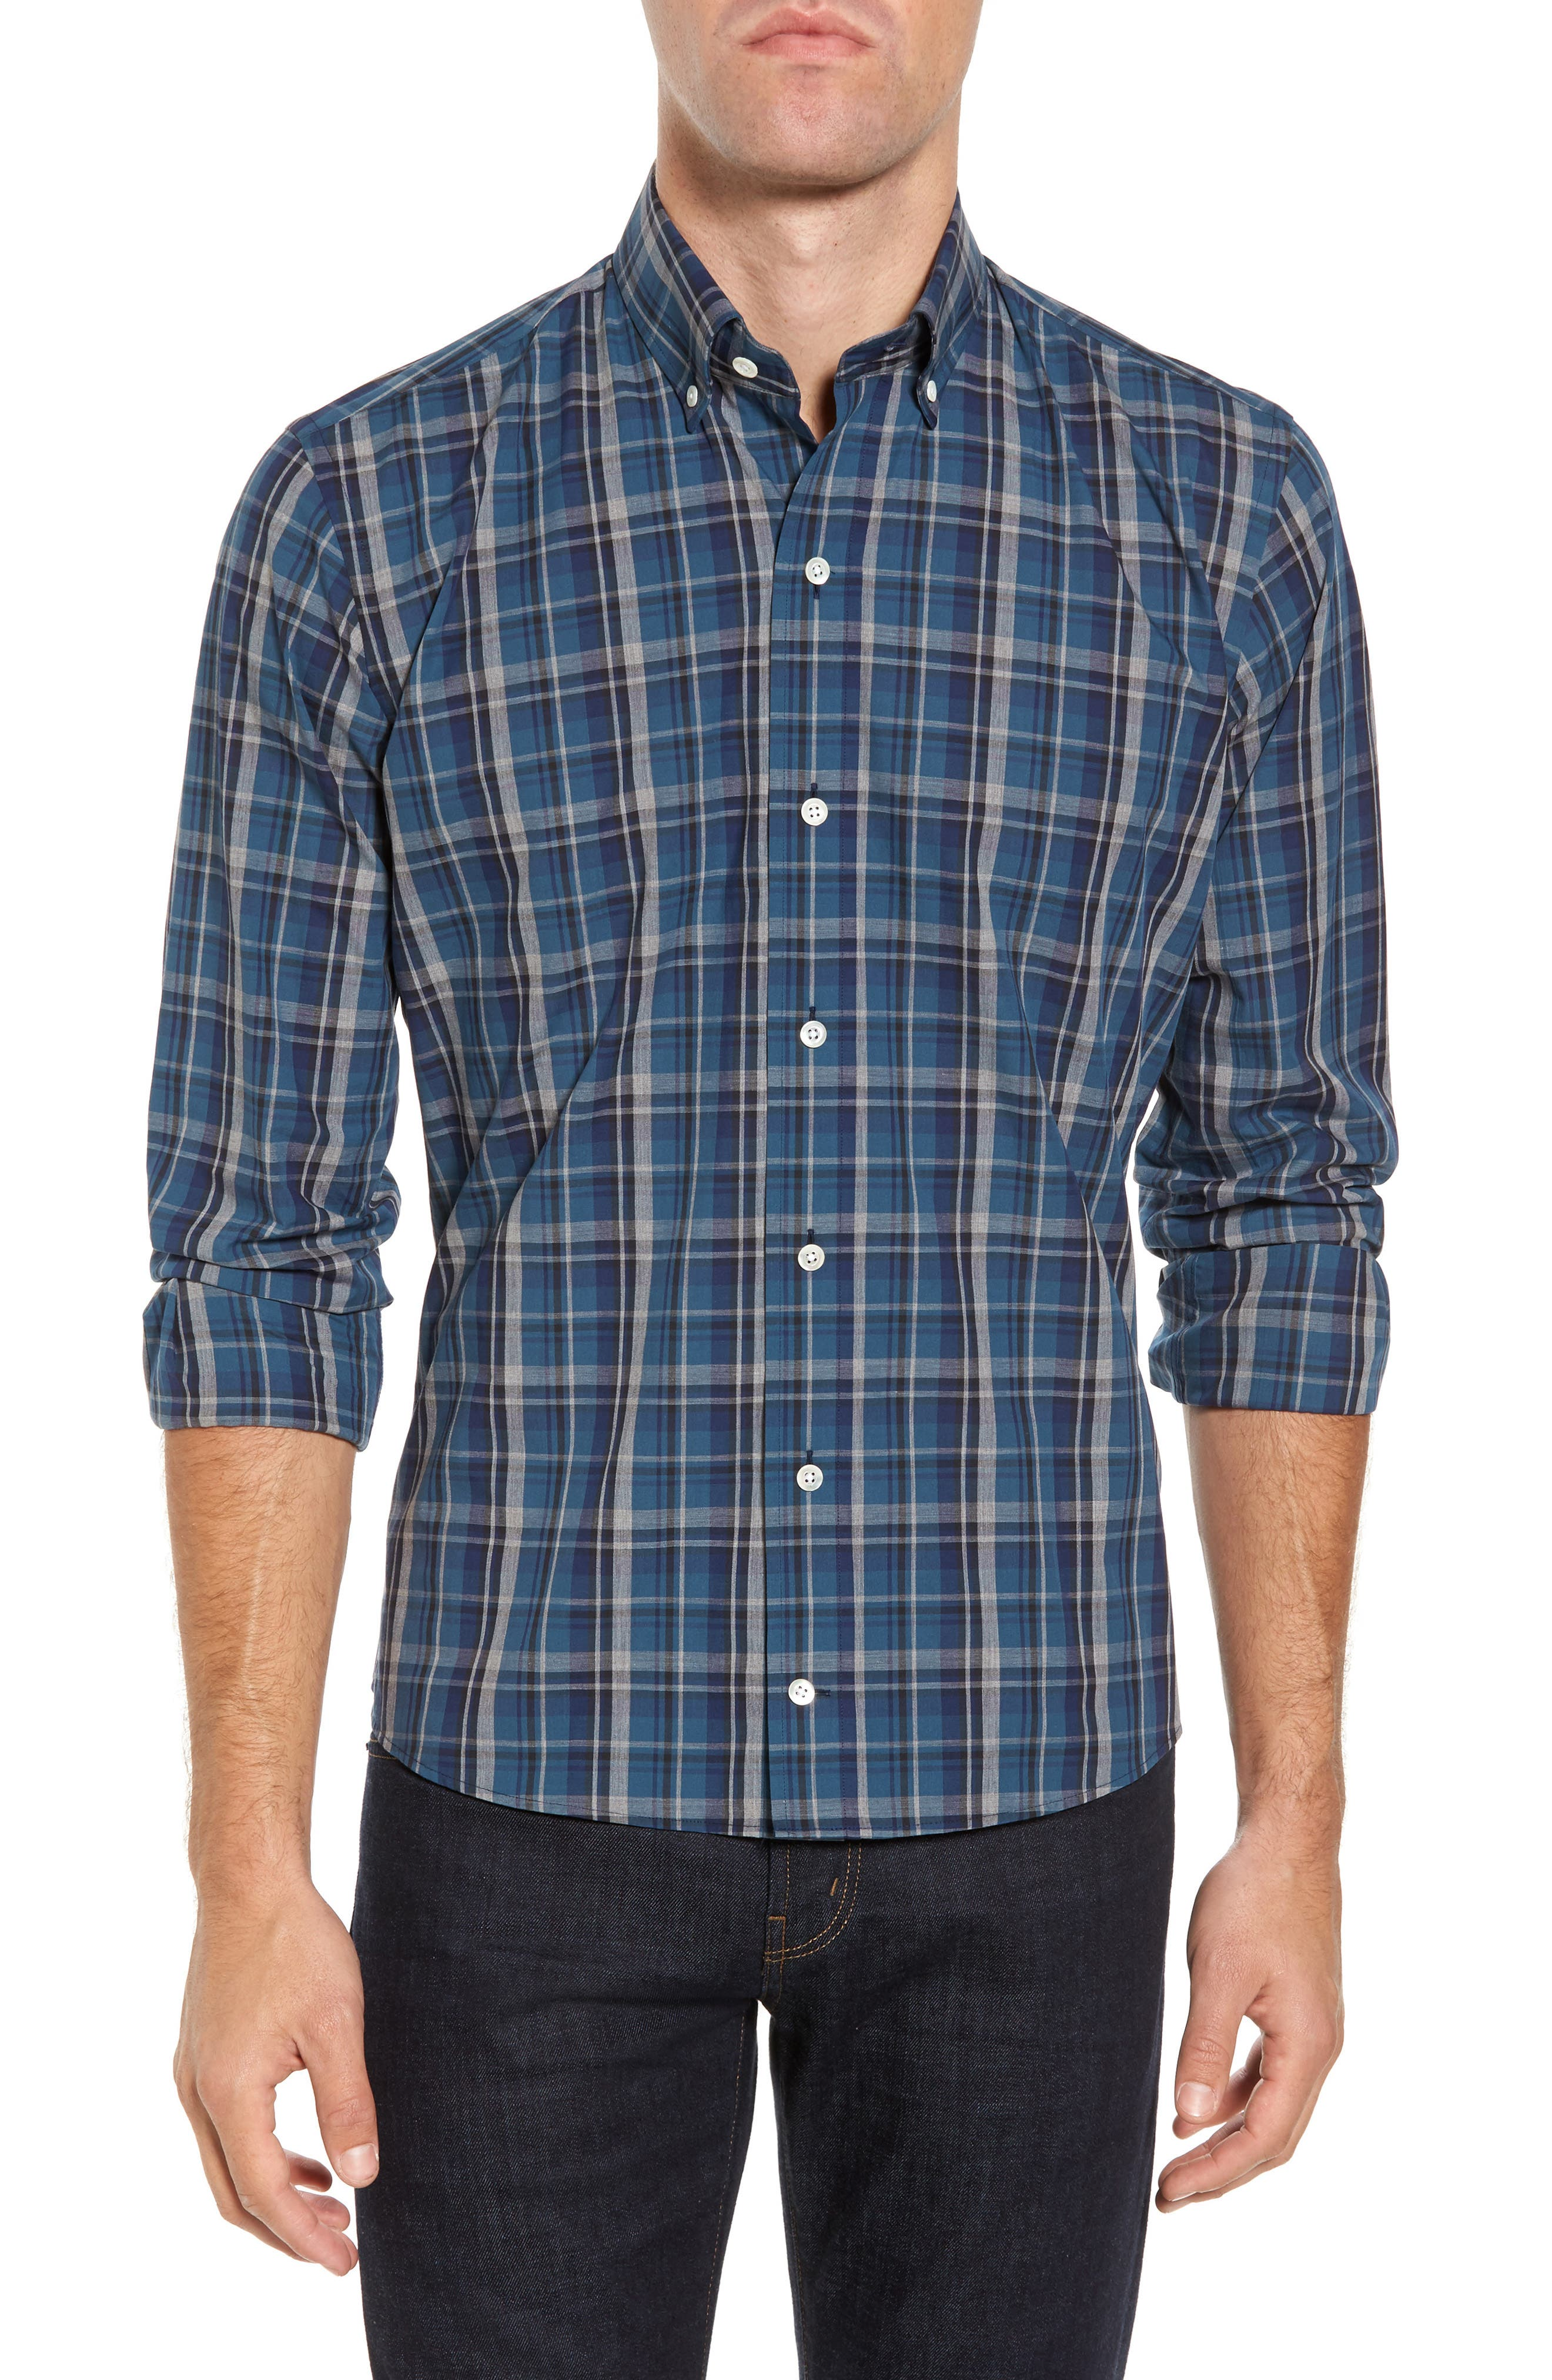 Main Image - Ledbury Slim Fit Plaid Sport Shirt